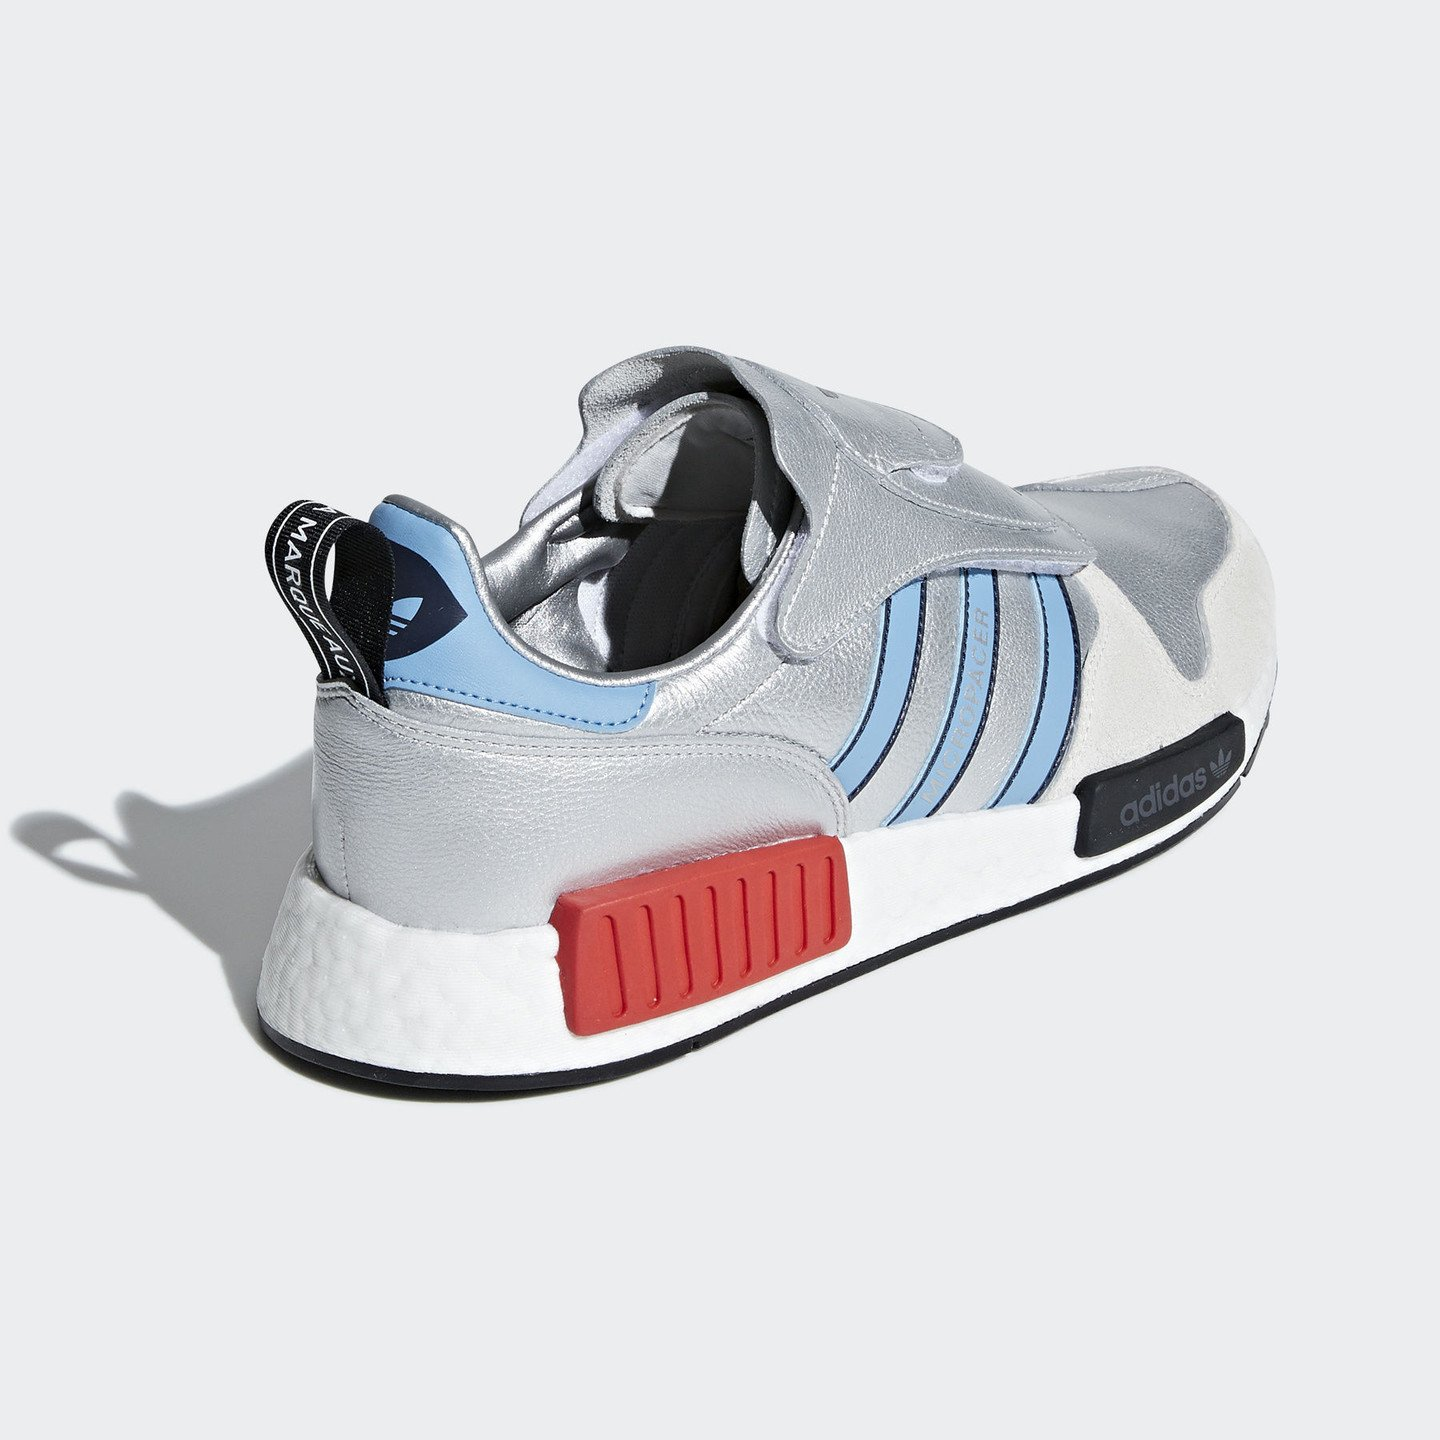 Adidas Micropacer x R1 'Never Made' Silver Metallic / Light Blue / Ftwr White G26778